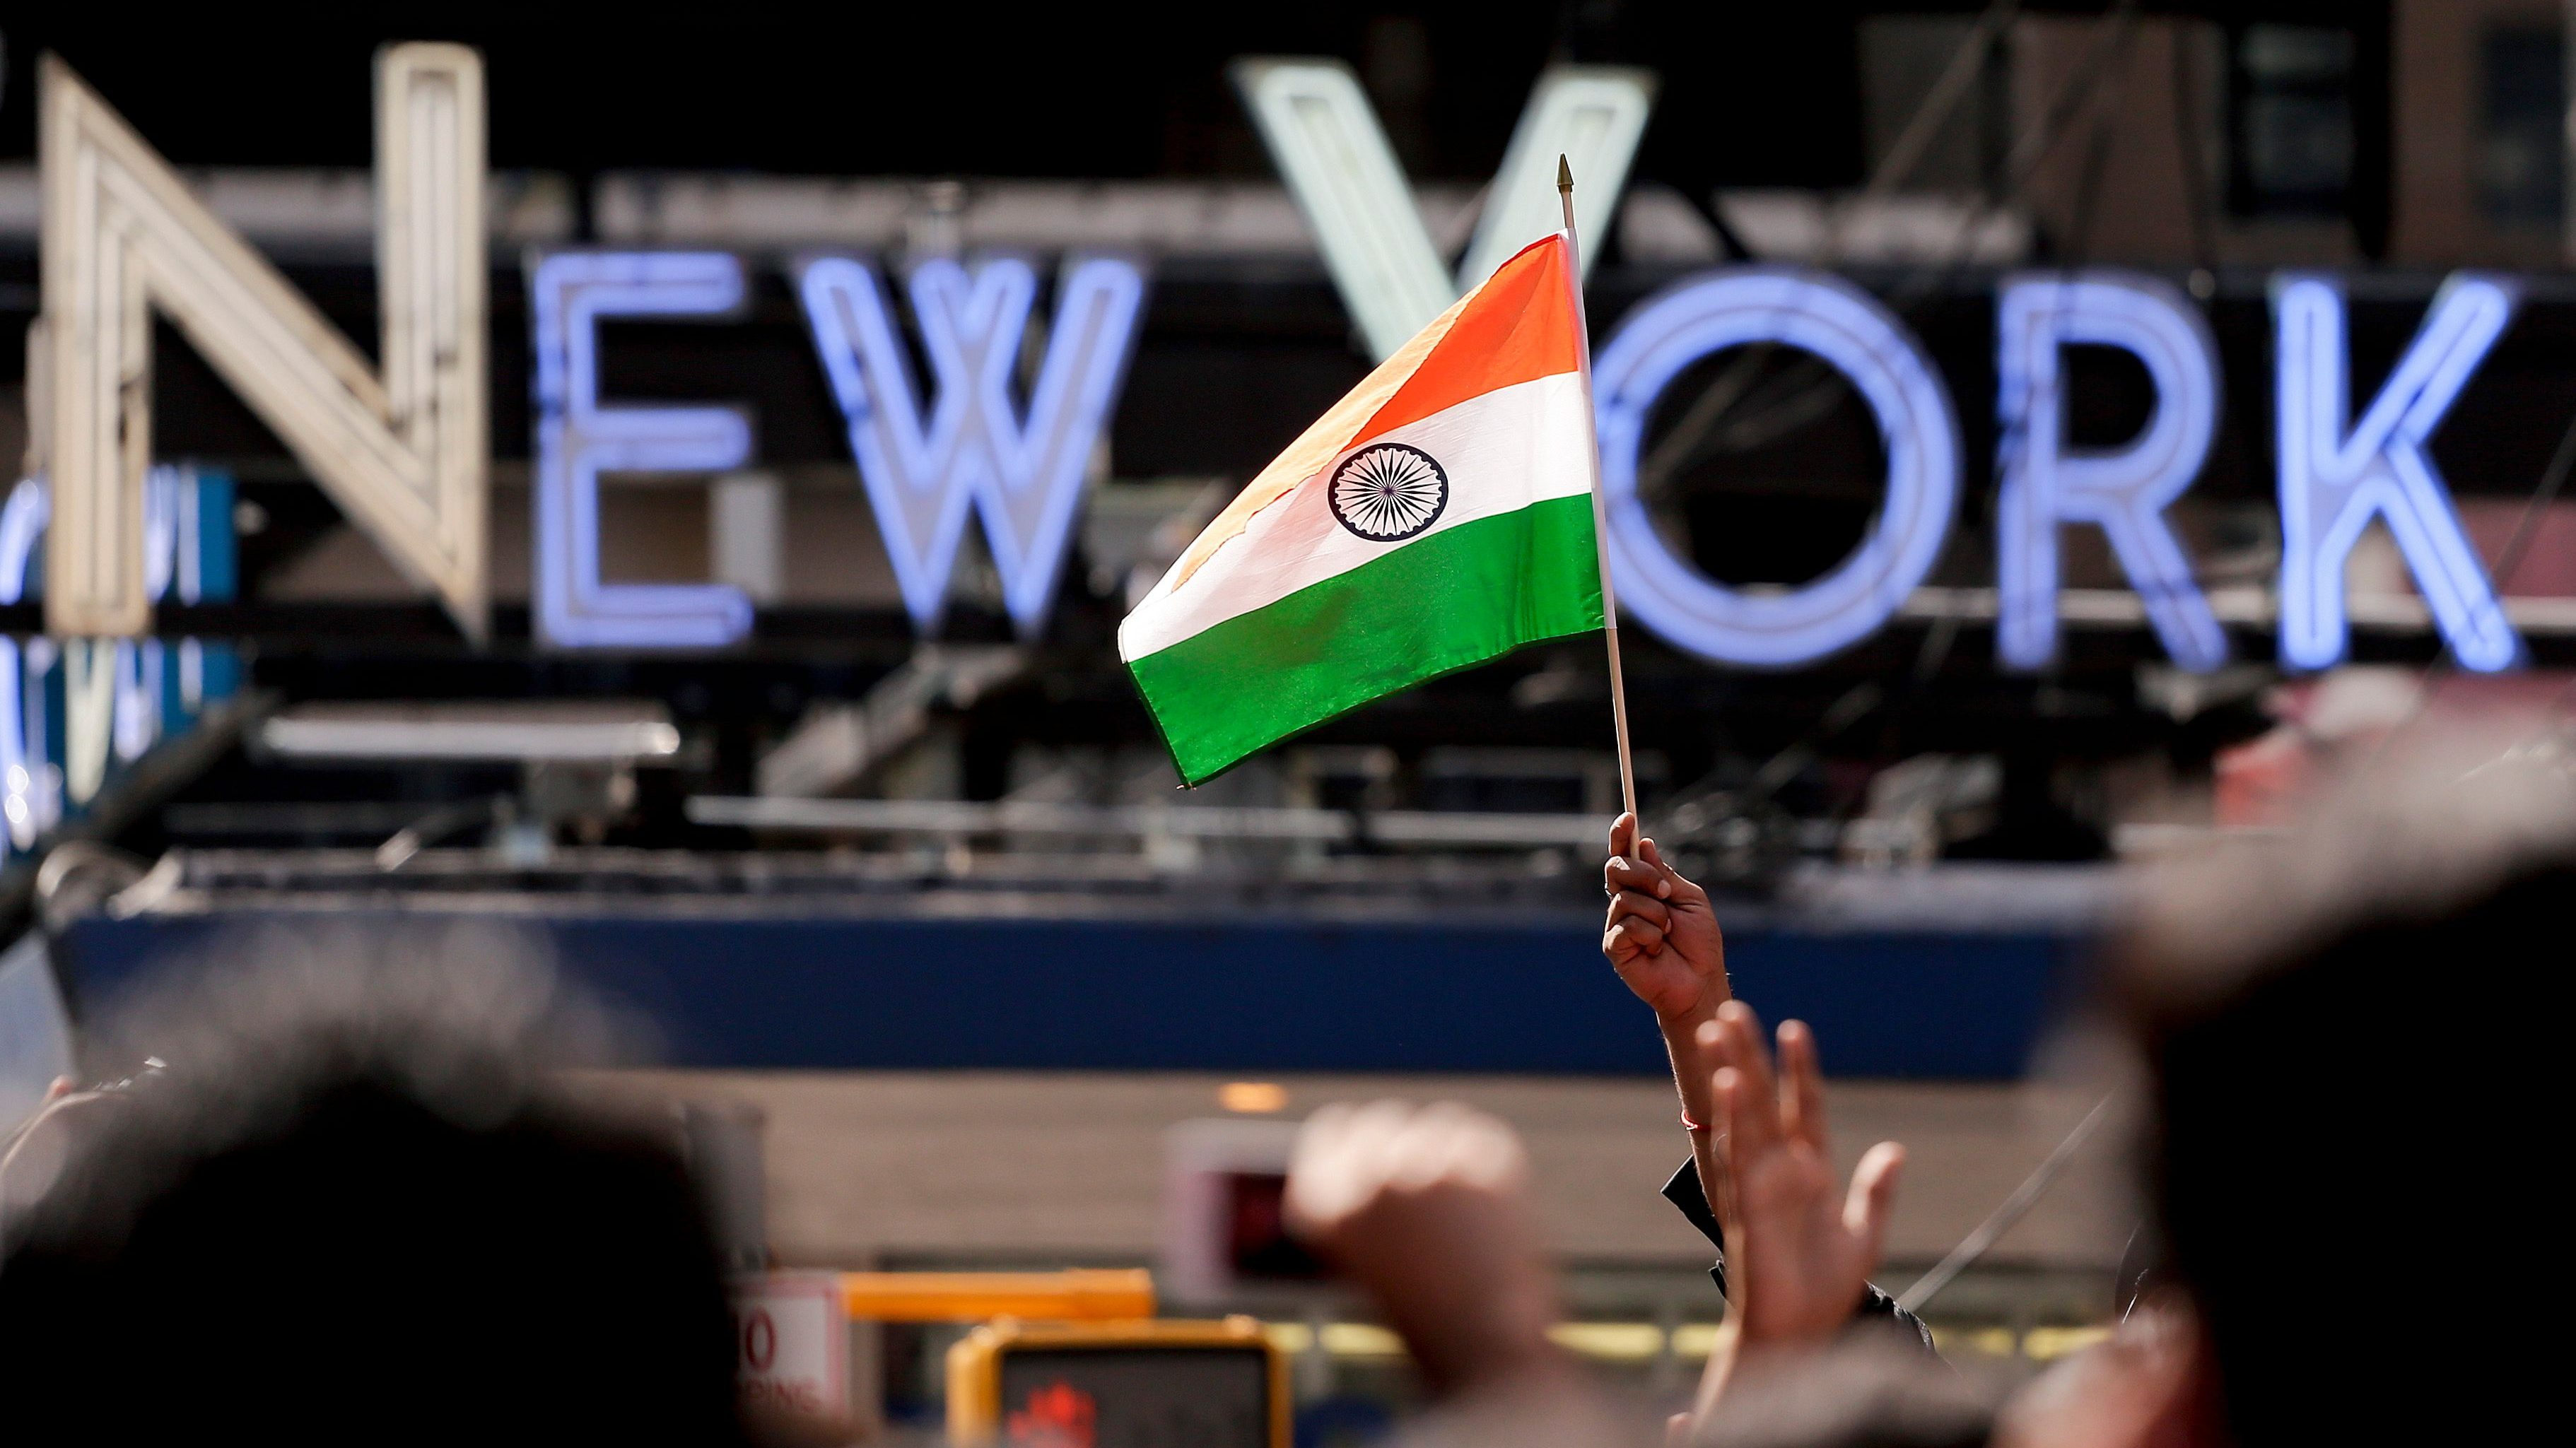 Members of the Indian-American community gather in Times Square to watch a live stream of Indian Prime Minister Narendra Modi who spoke to a capacity crowd at Madison Square Garden, Sunday, Sept. 28, 2014, in New York. A day after addressing a hushed U.N. General Assembly, where headphone-wearing delegates rarely break into a smile, India's new prime minister told a packed and boisterous crowd to help him develop his nation's economy, vowing that under his leadership, India won't look back. (AP Photo/Julie Jacobson)